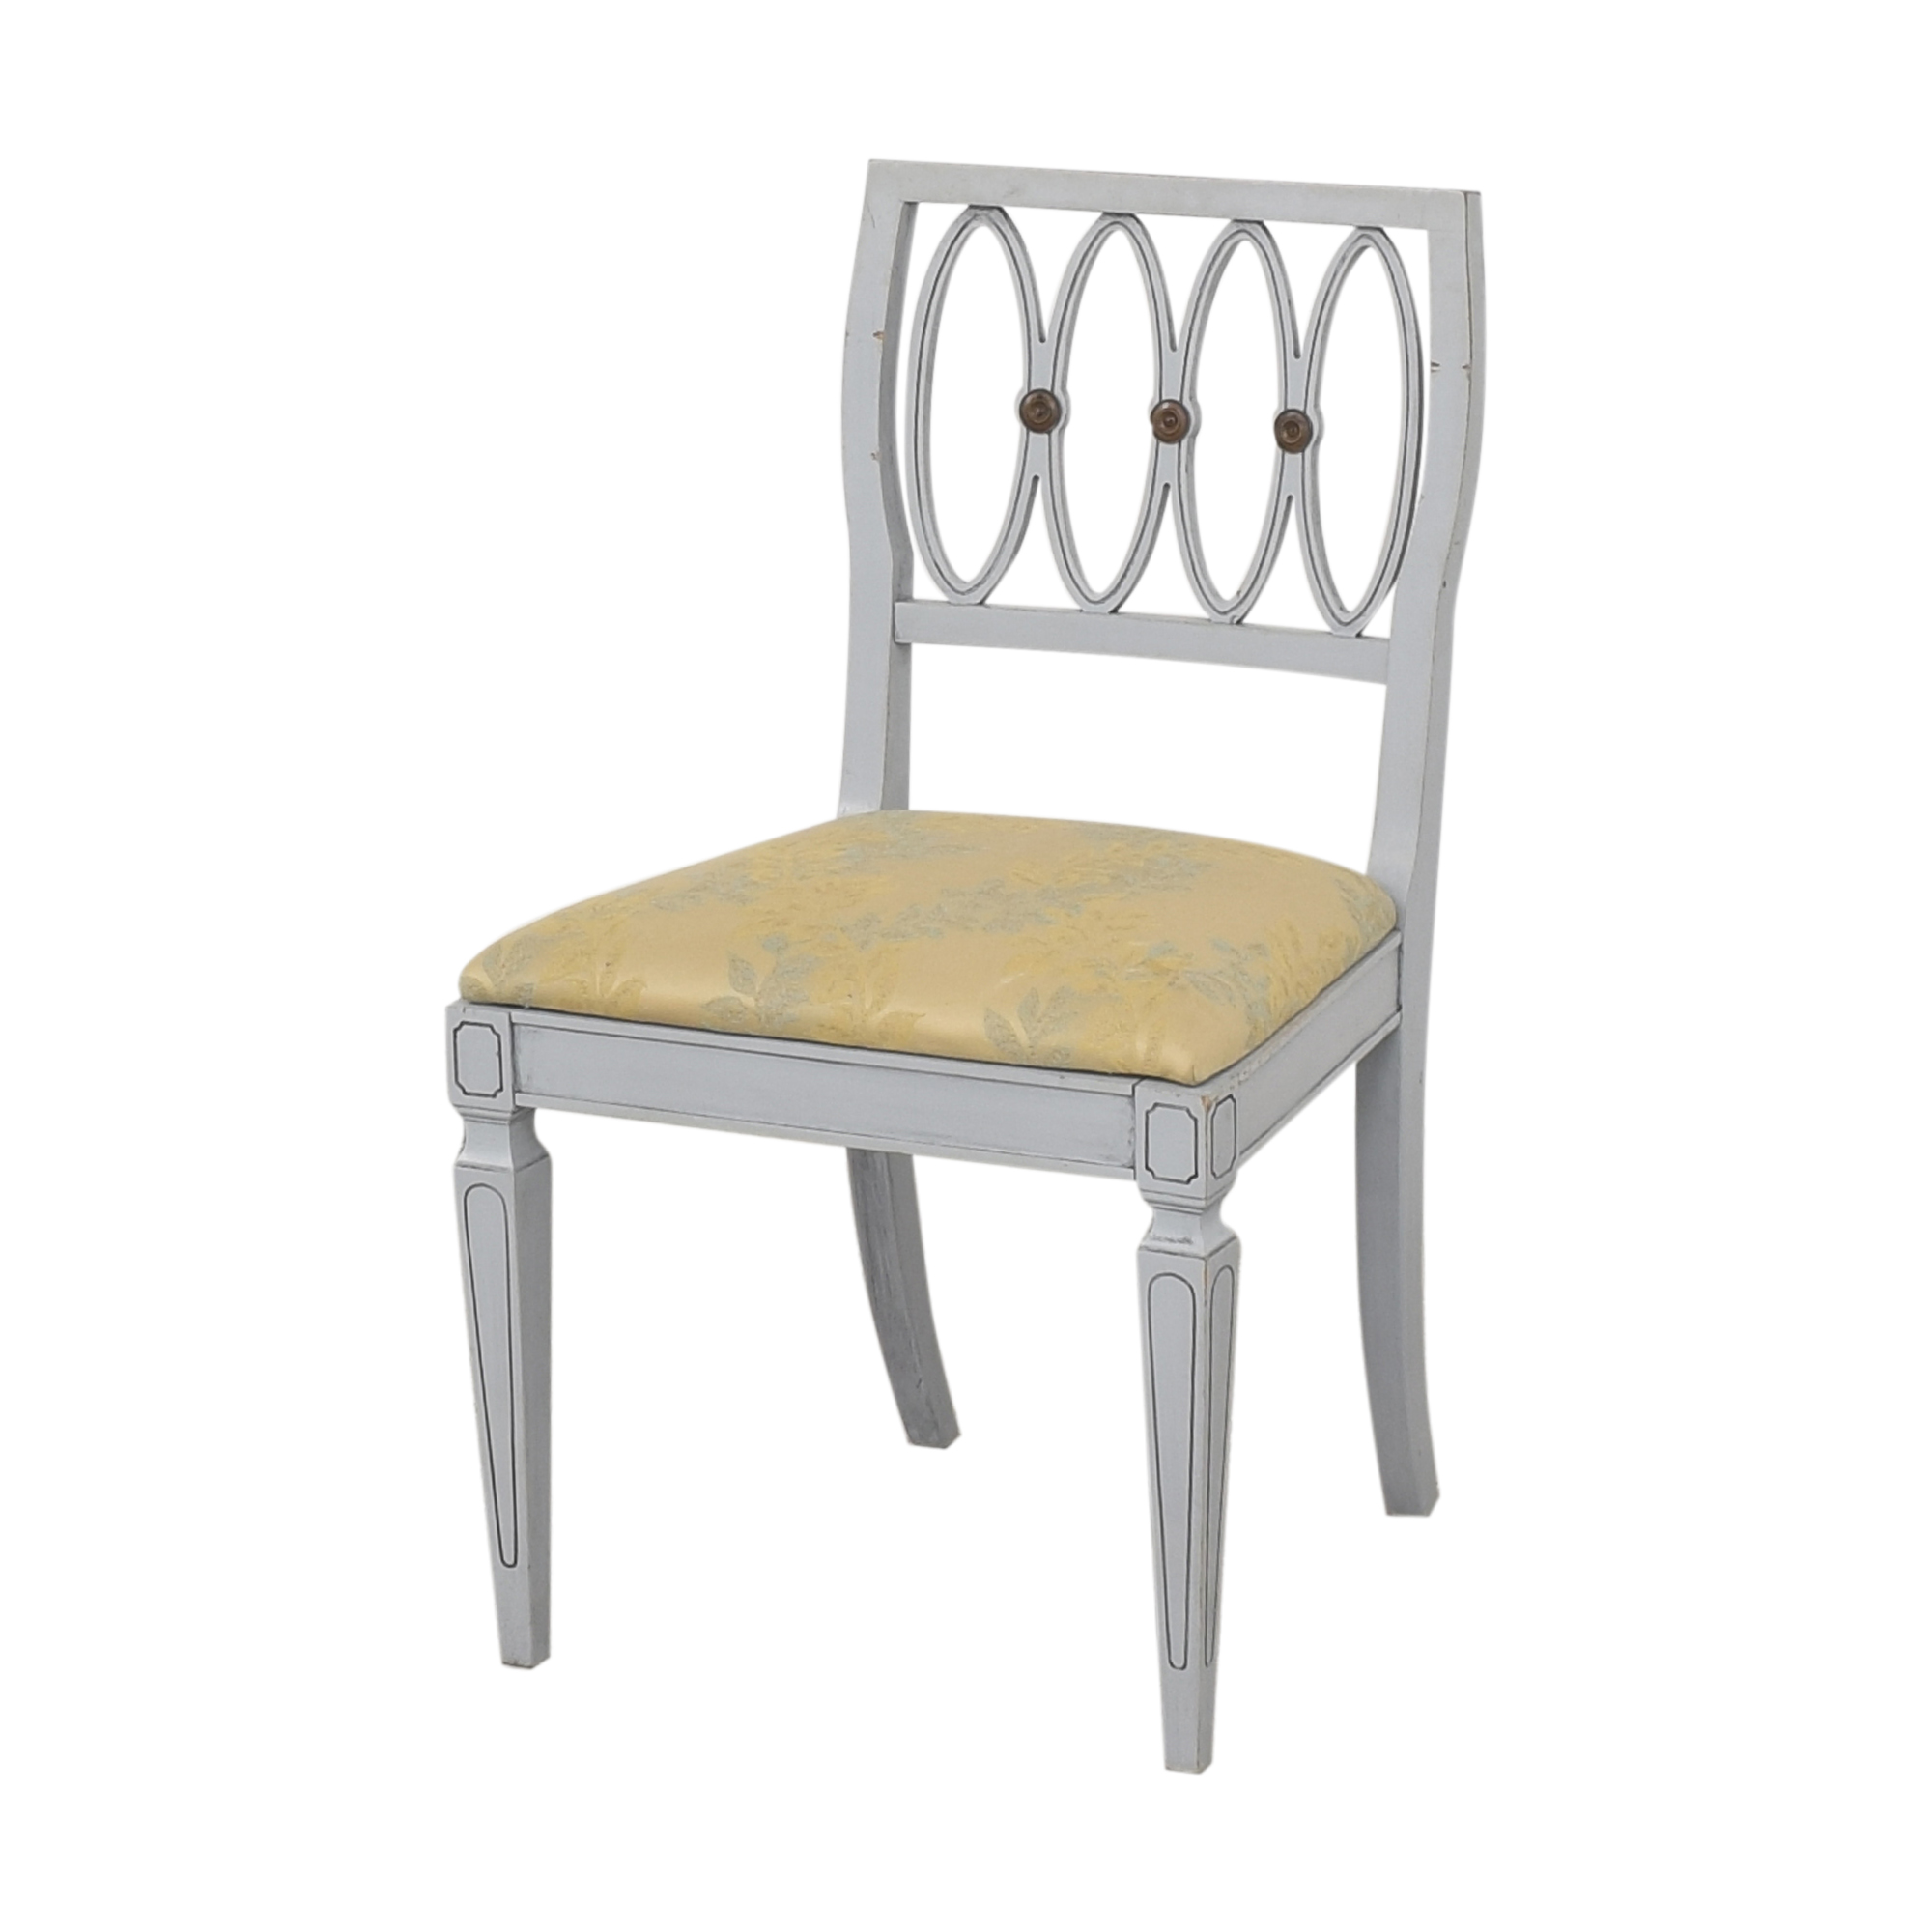 Thomasville Thomasville Hollywood Regency Style Dining Chairs Chairs